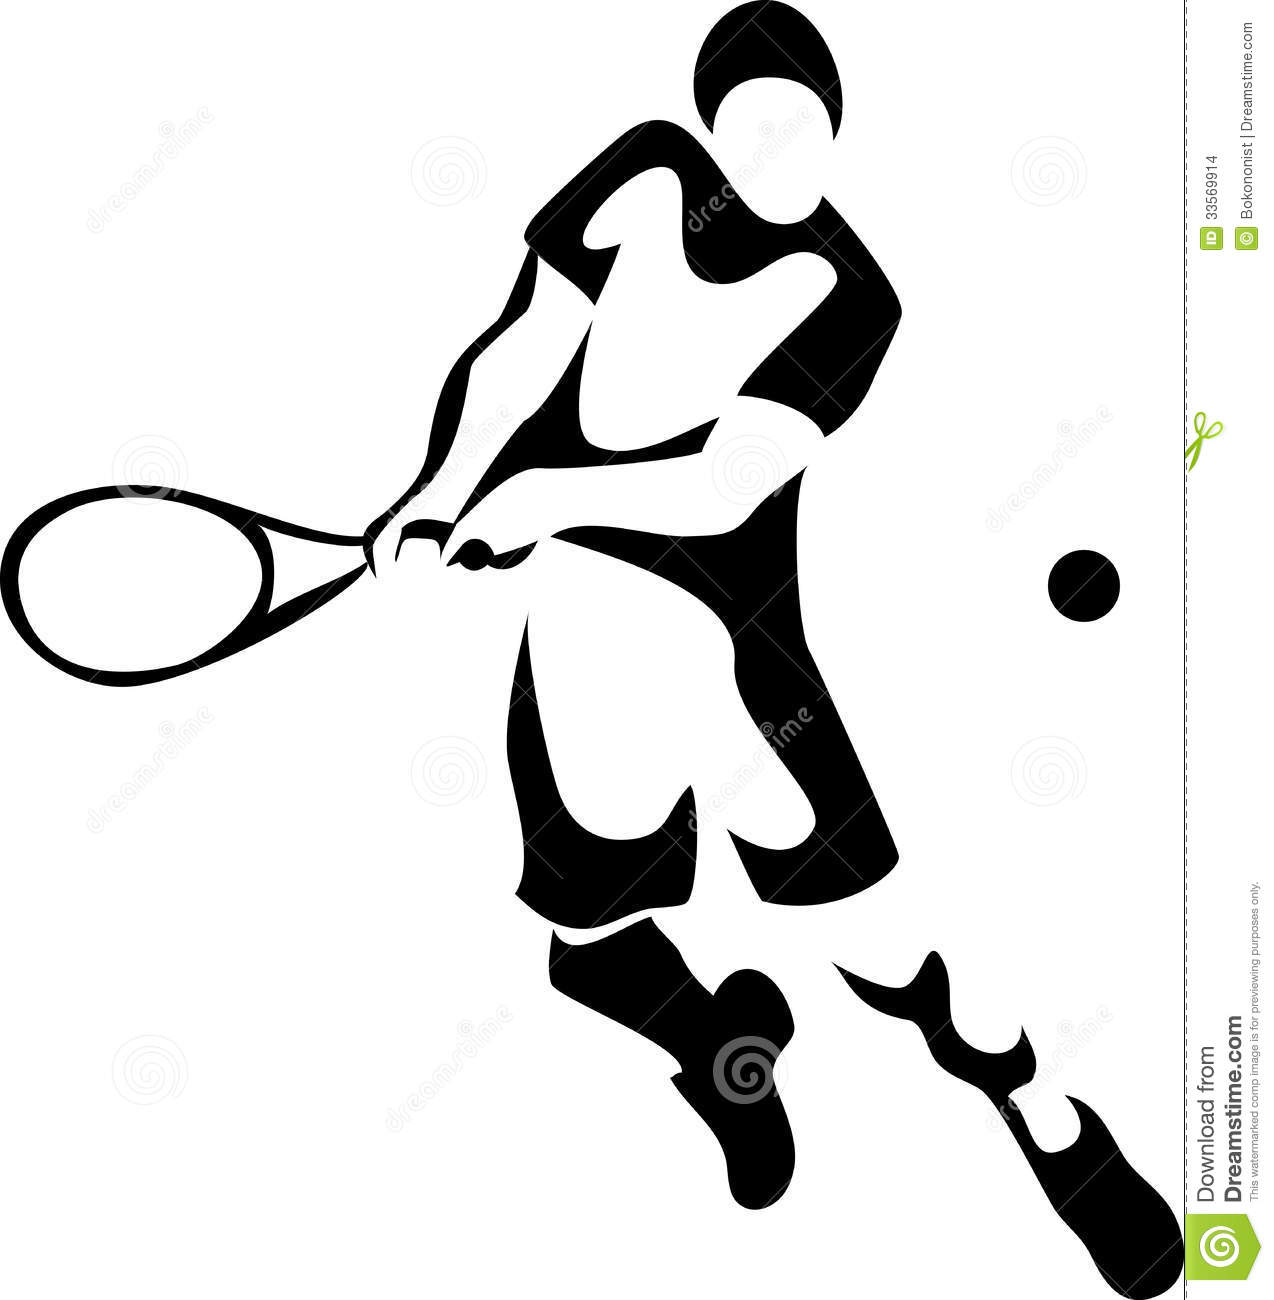 Stylized tennis player - black and white illustration.